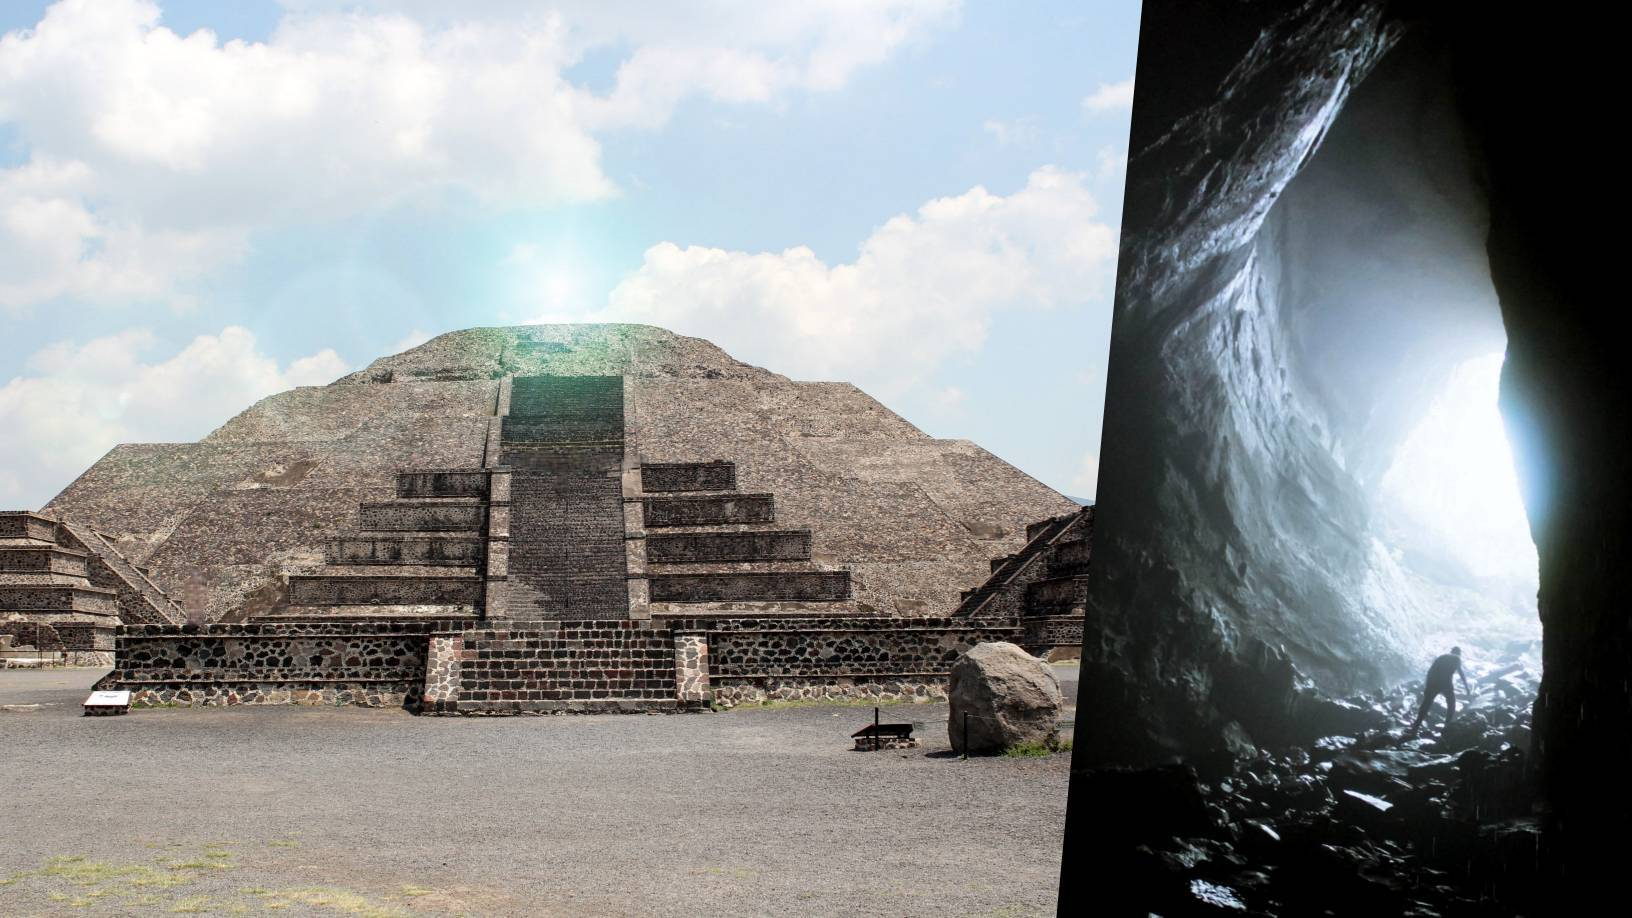 The Passage to the Underworld found under the pyramid of the Moon in Teotihuacán